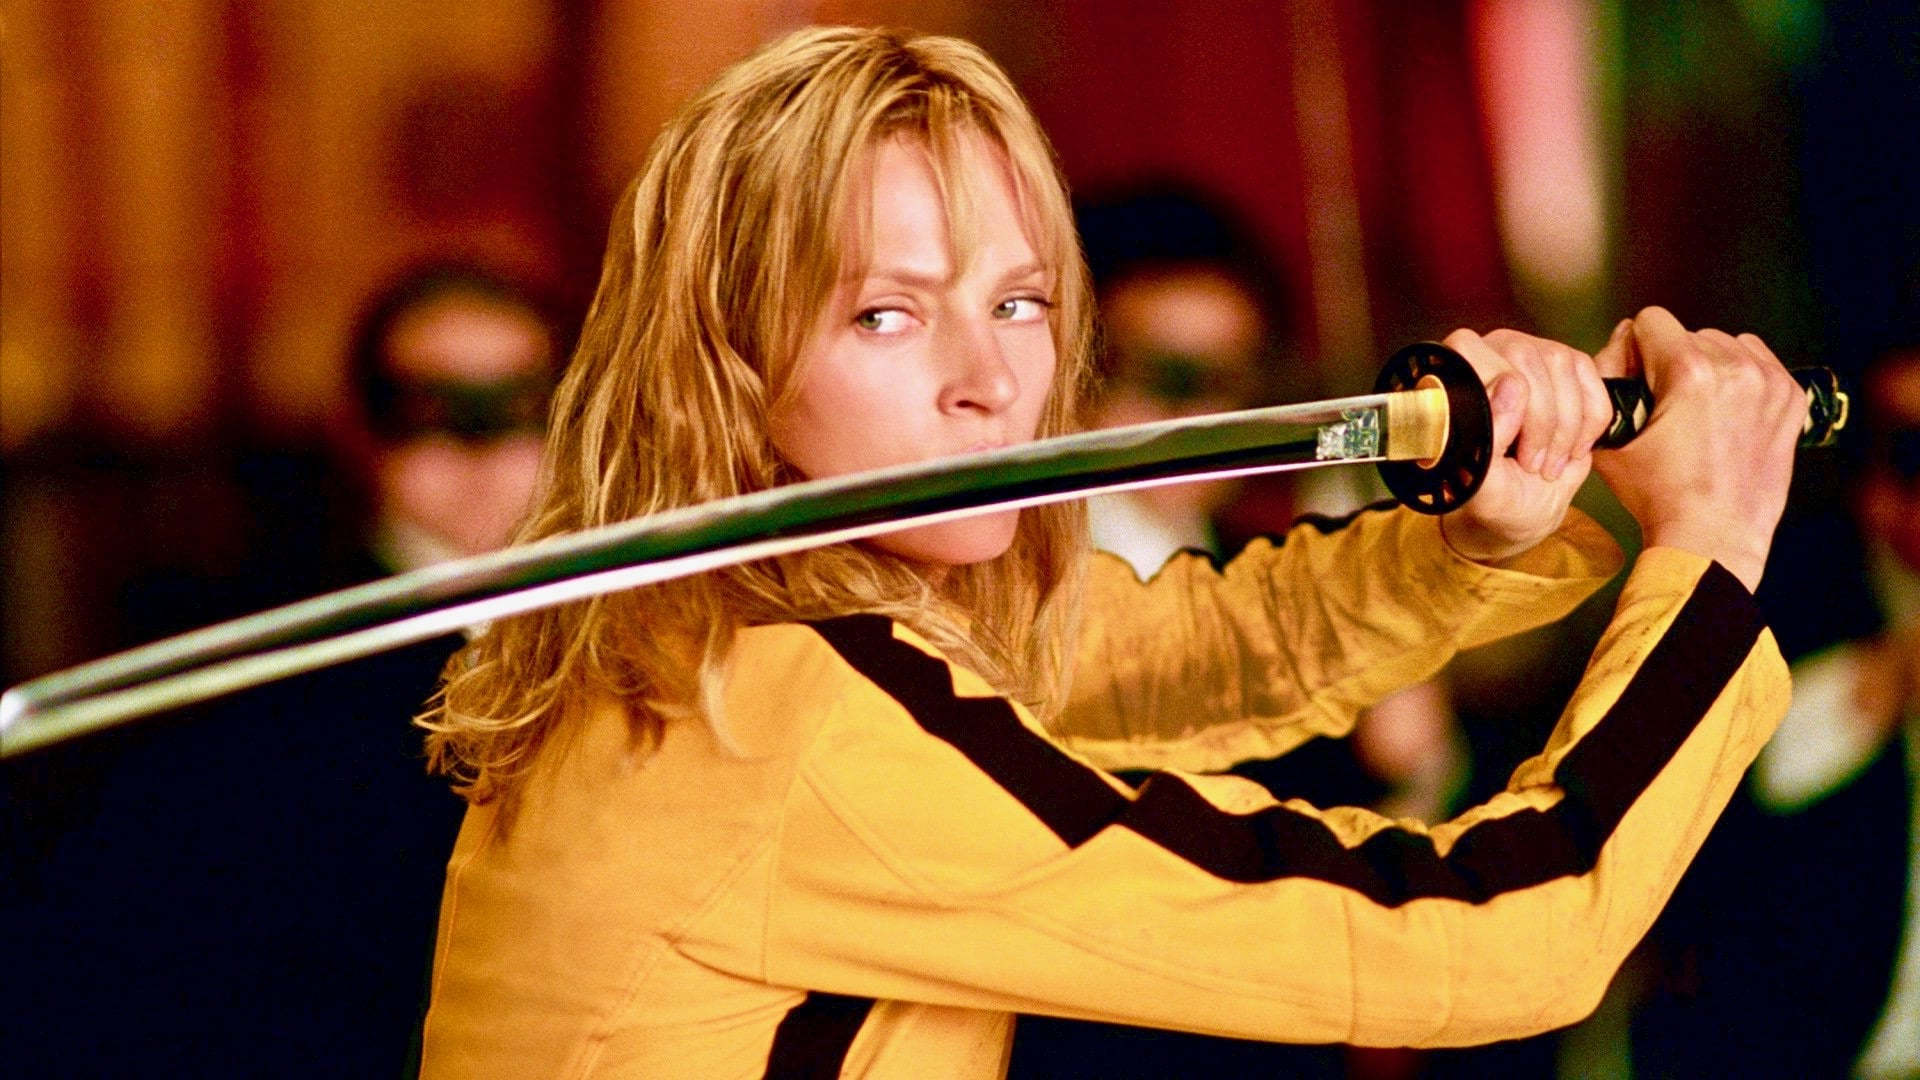 Kill Bill | 10 Best Action Movies With Strong Female Lead Characters | Brain Berries